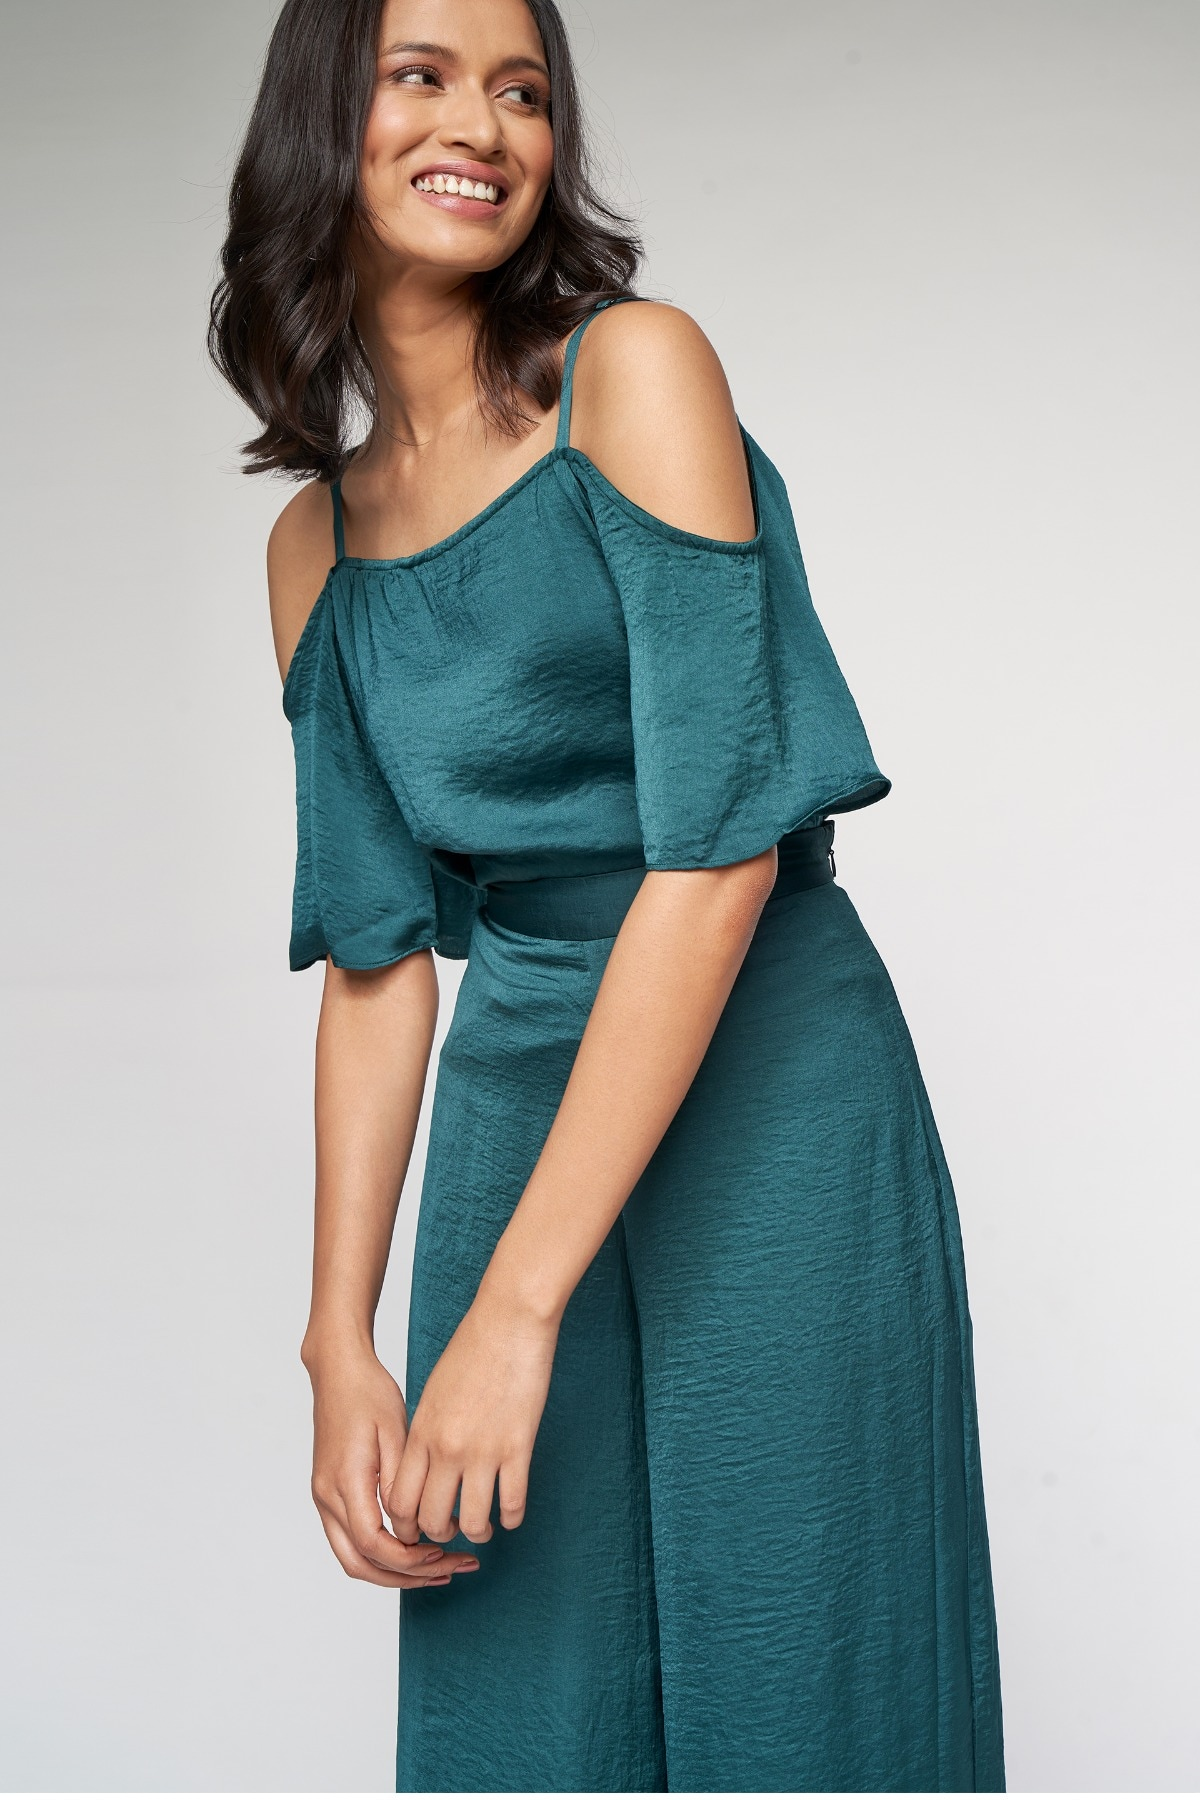 AND | Green Solid Fit and Flare Co-ordinate Set